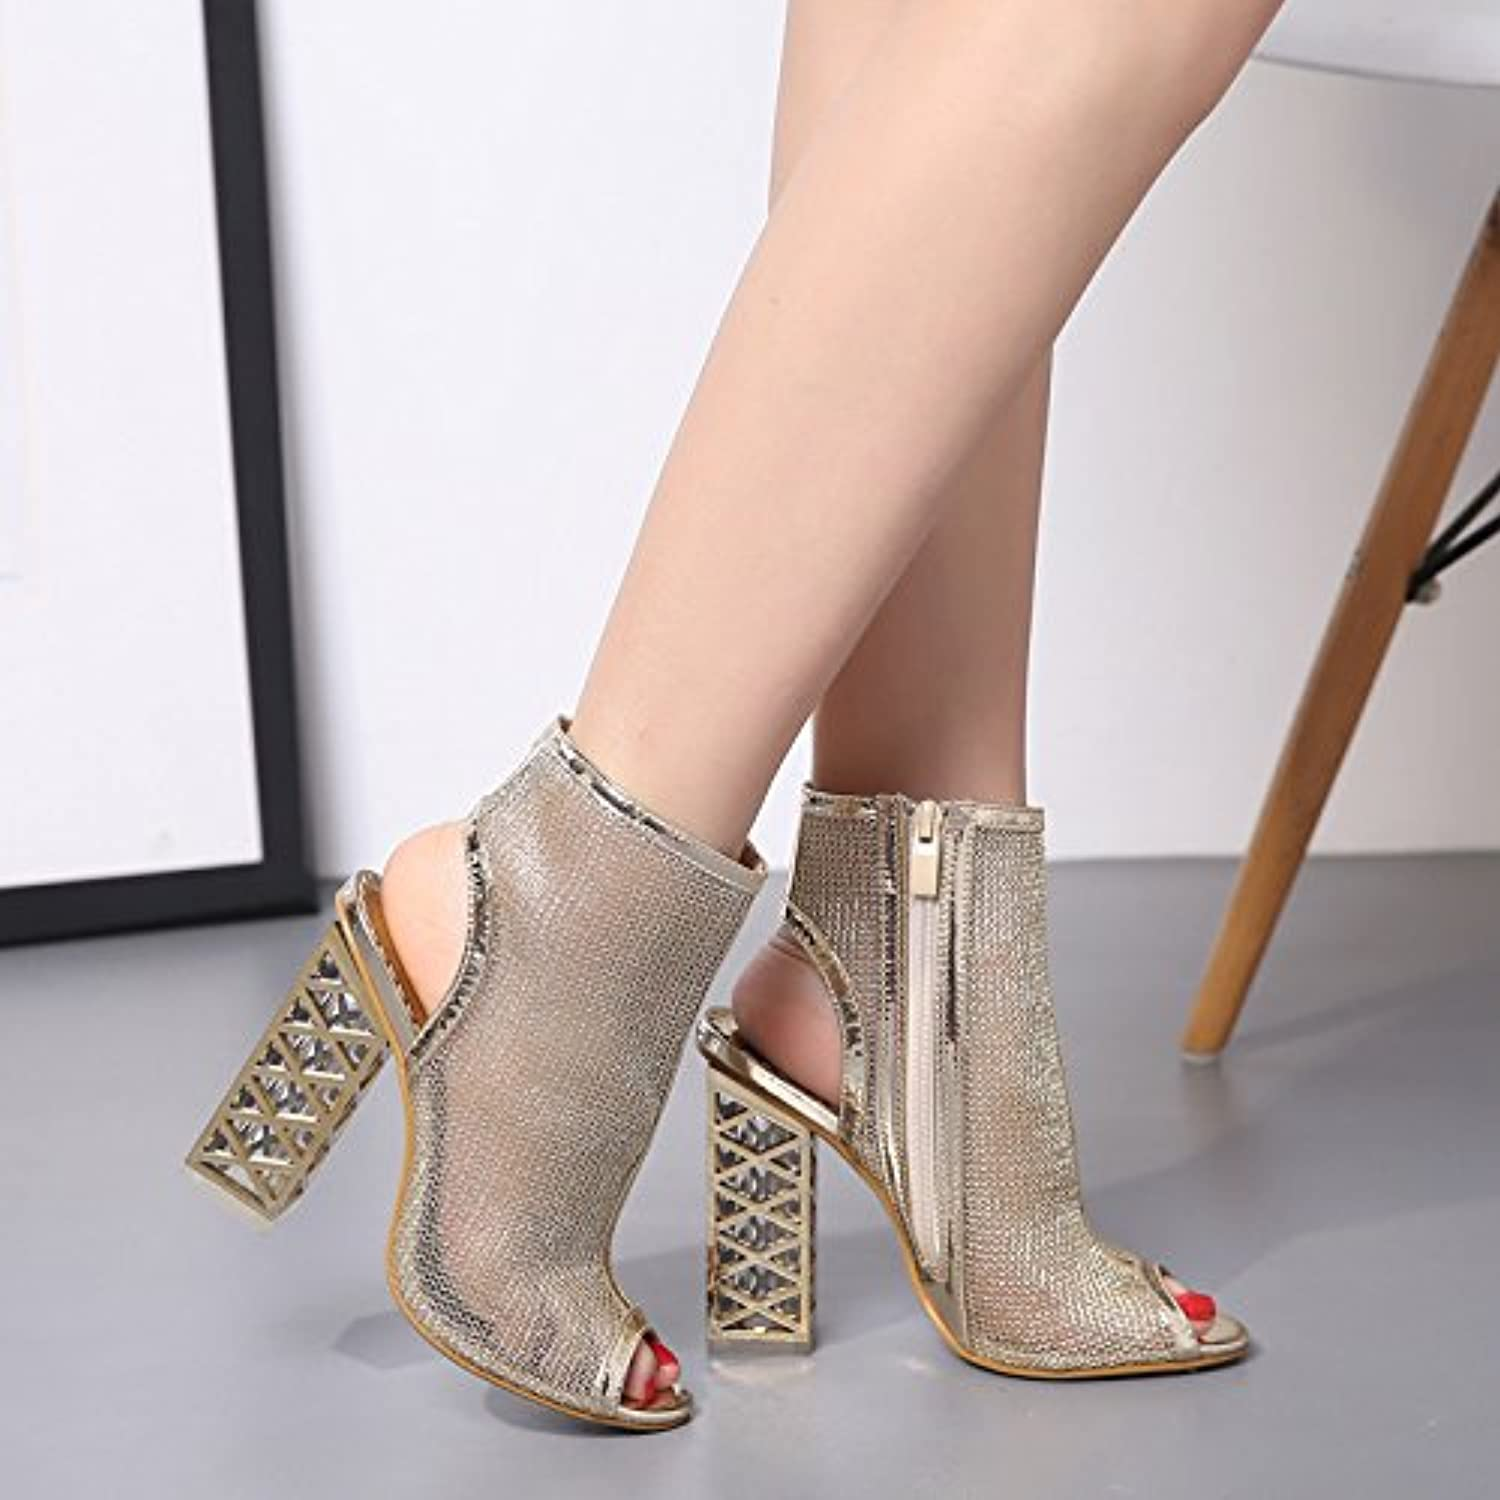 Thick with high-heeled shoes Women's singles new crystal like dew-toe sandals thick with high-heeled shoes Women's singles